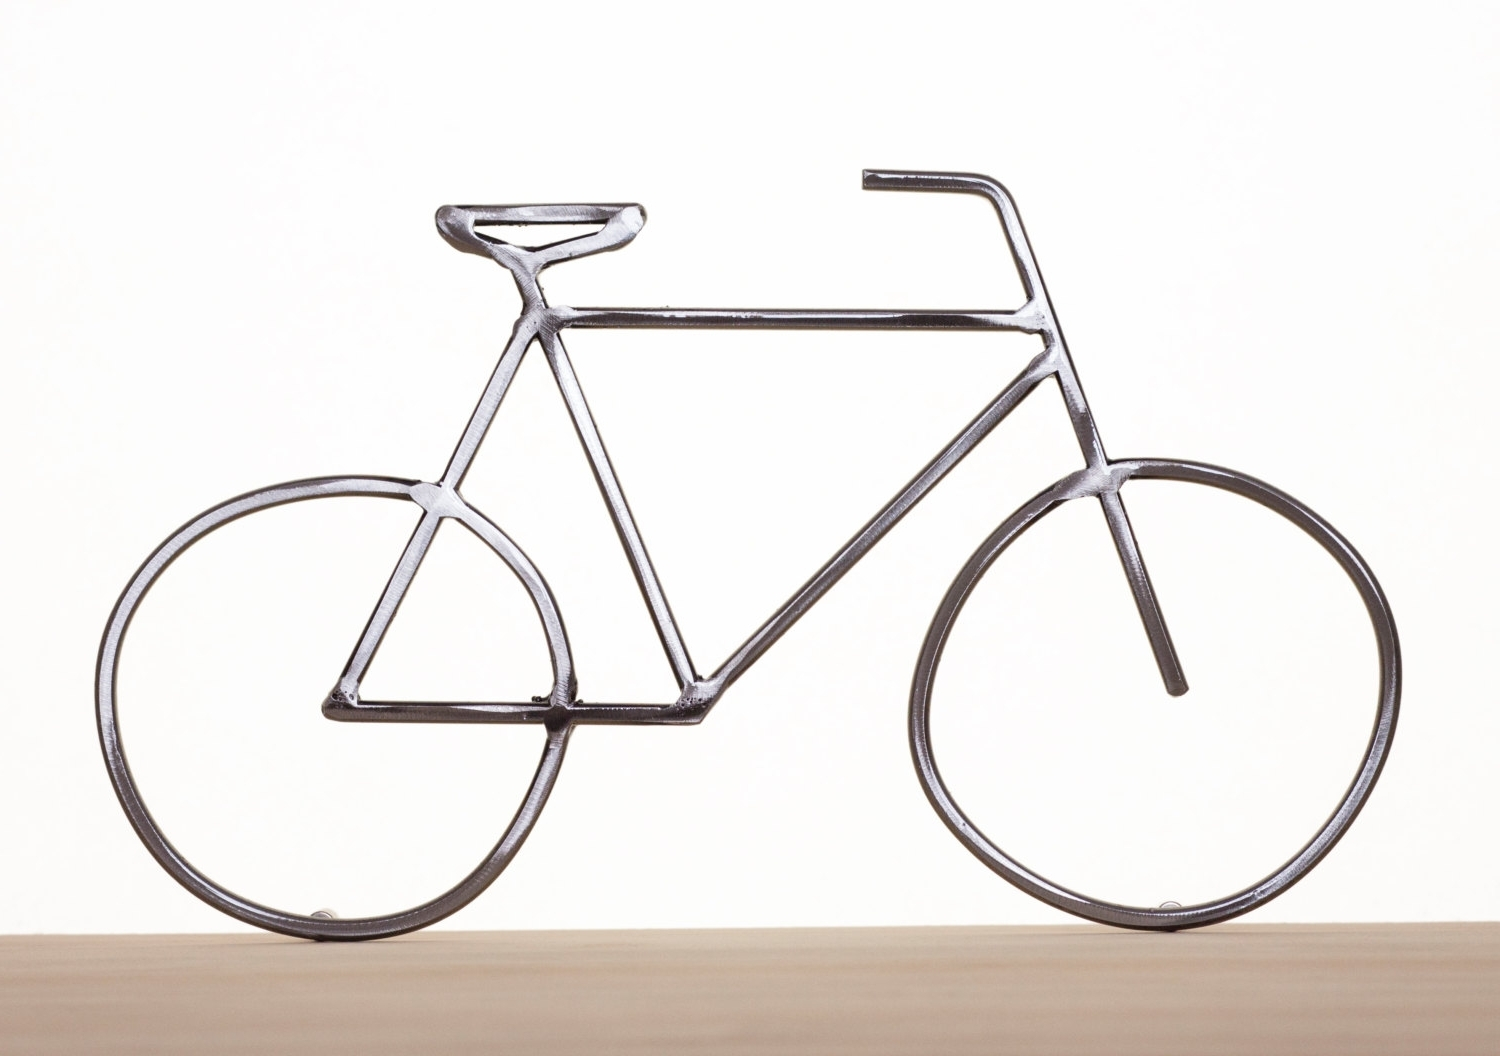 Marvellous Design Metal Bicycle Wall Art Interior Ideas Bike With Widely Used Bicycle Wall Art (View 13 of 20)